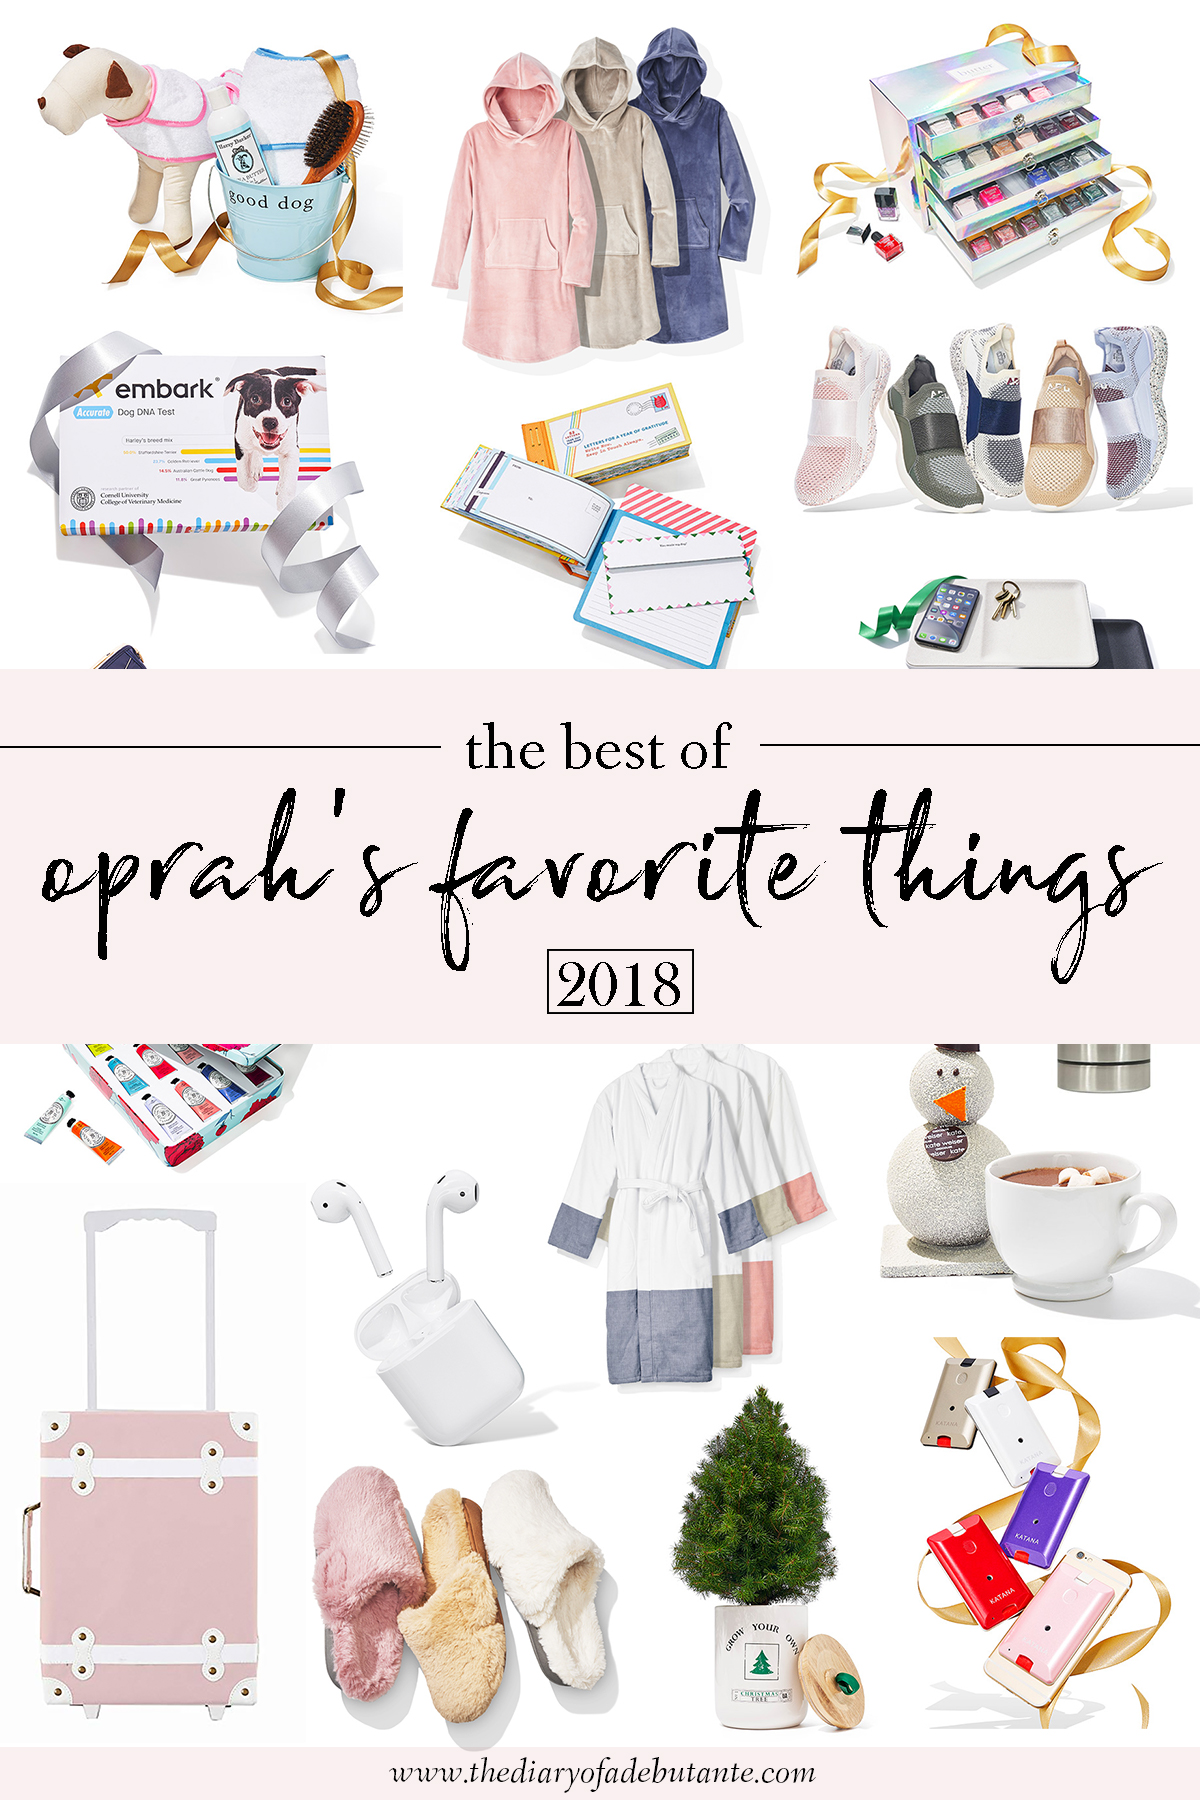 The Best of Oprah's Favorite Things 2018 by affordable fashion and southern lifestyle blogger Stephanie Ziajka from Diary of a Debutante, Oprah's Favorite Things gift guide, genius gift ideas from Oprah's Favorite Things list 2018